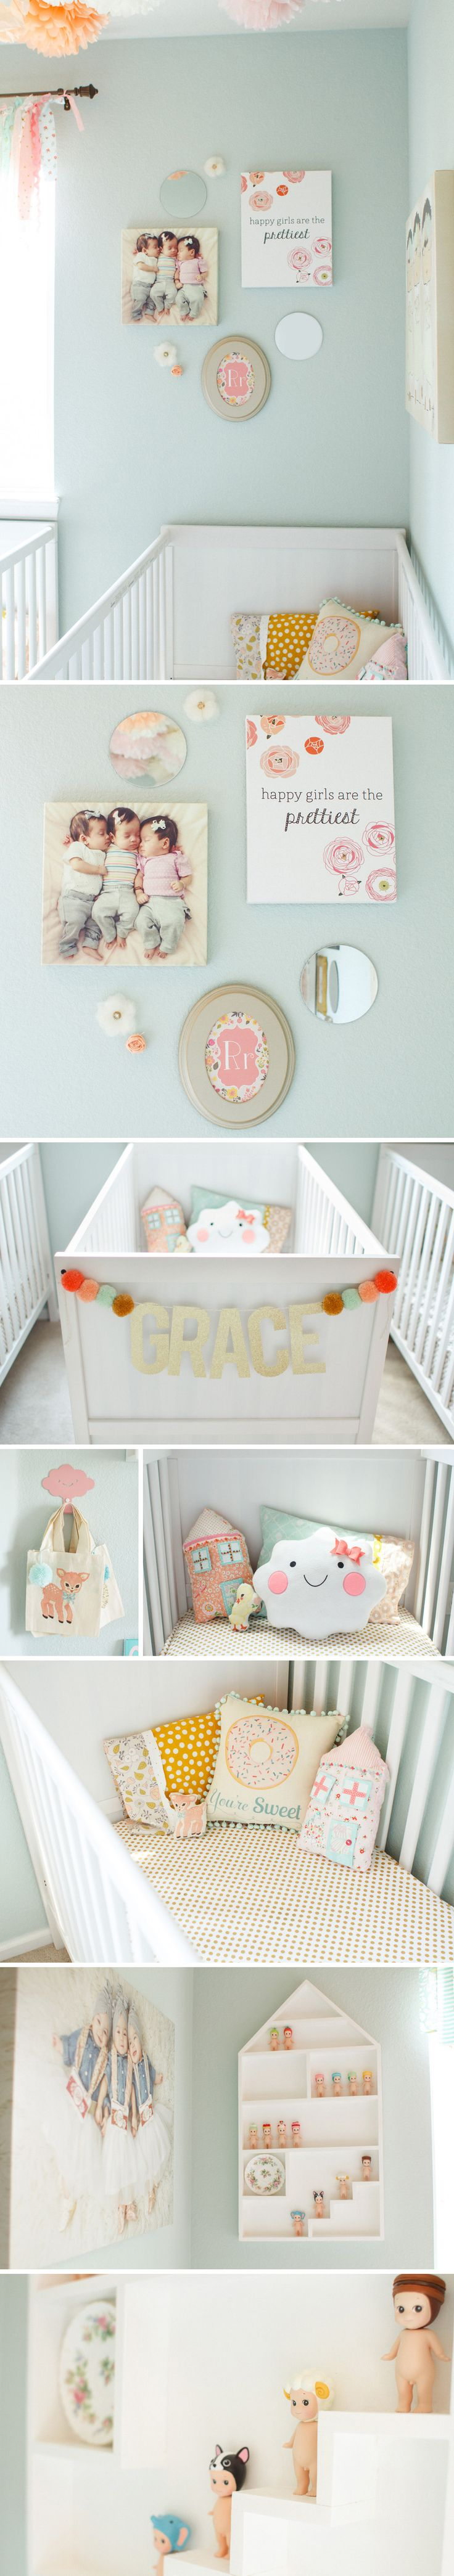 Crib for triplet babies - Nursery Blog Collage 21 Operation Robinson Triplet Nursery Complete